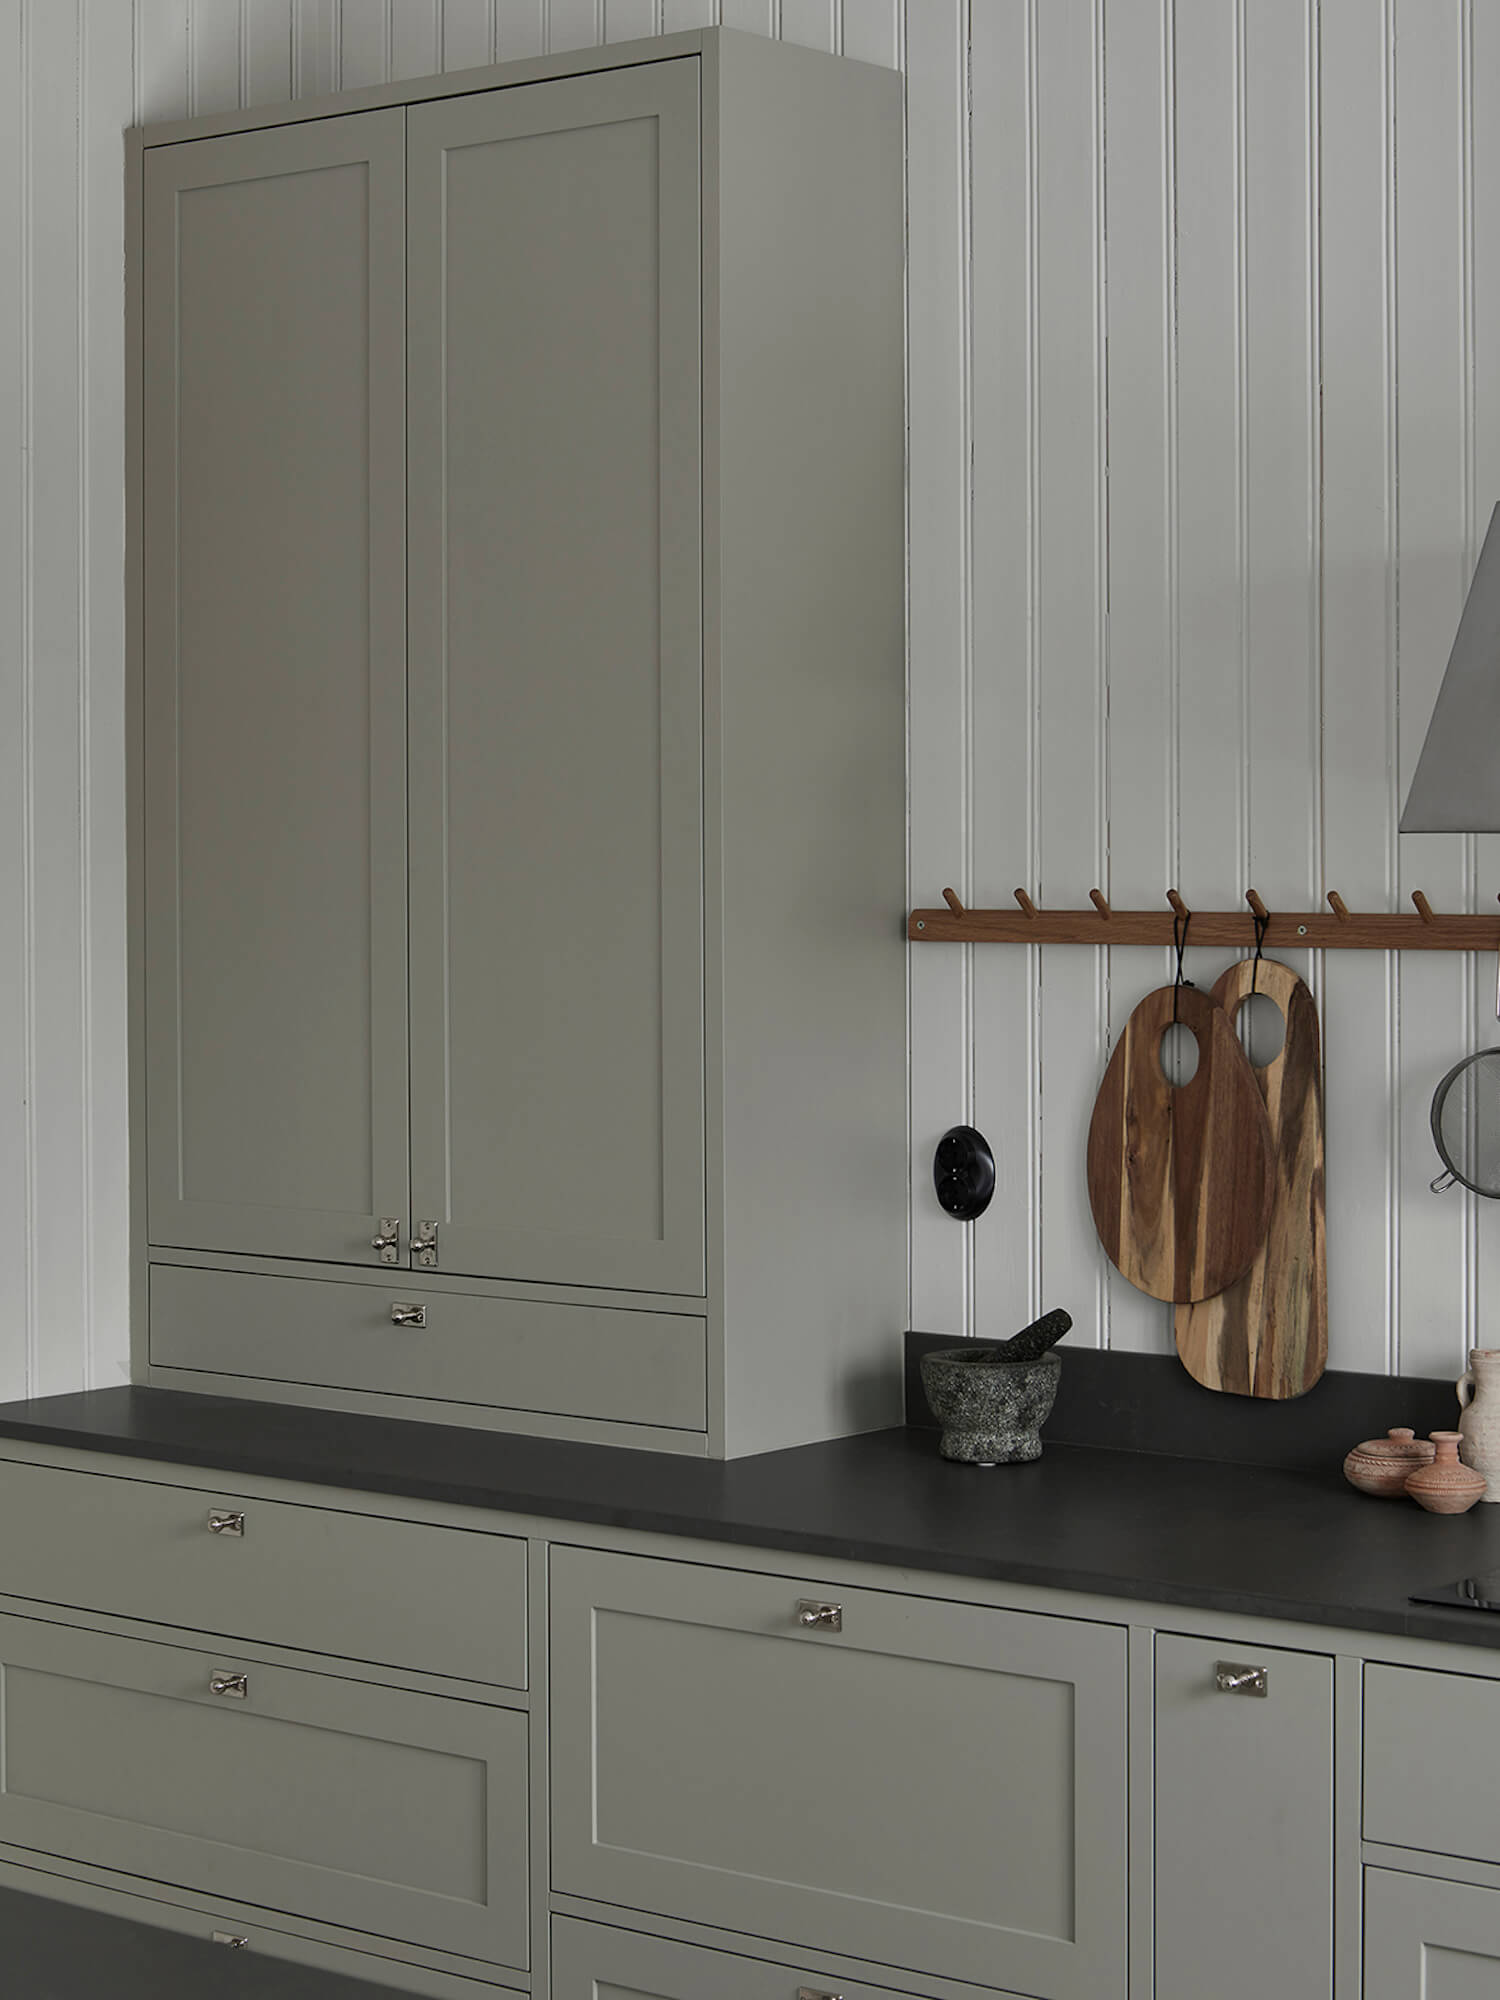 Grey Shaker Kitchen by Nordiska Kok | Designing a Nordic-Style Kitchen